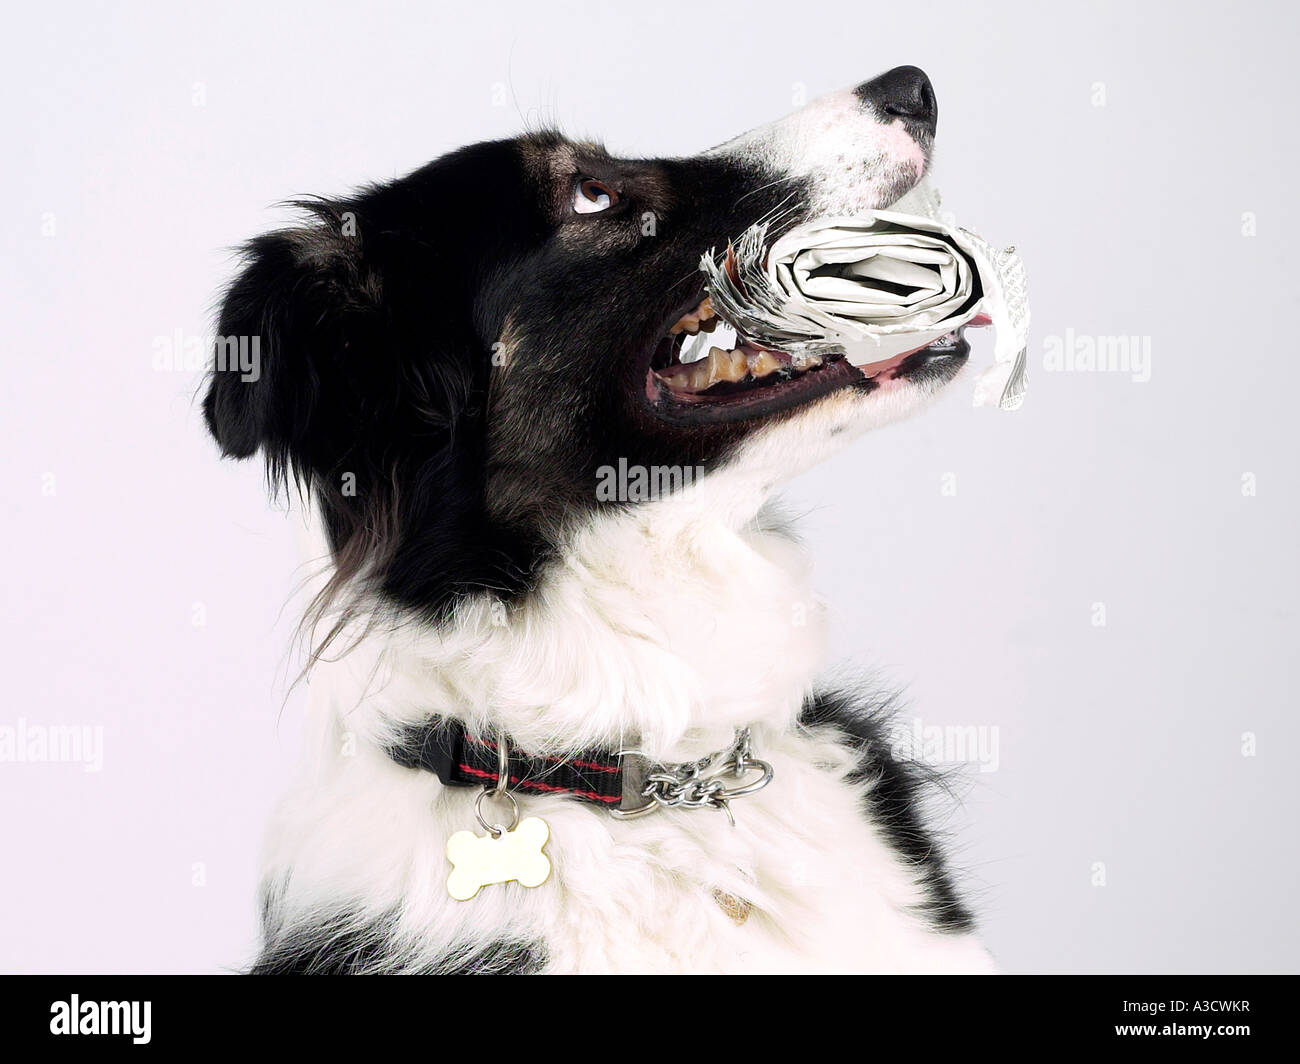 A collie holding a rolled up newspaper looking upwards. - Stock Image